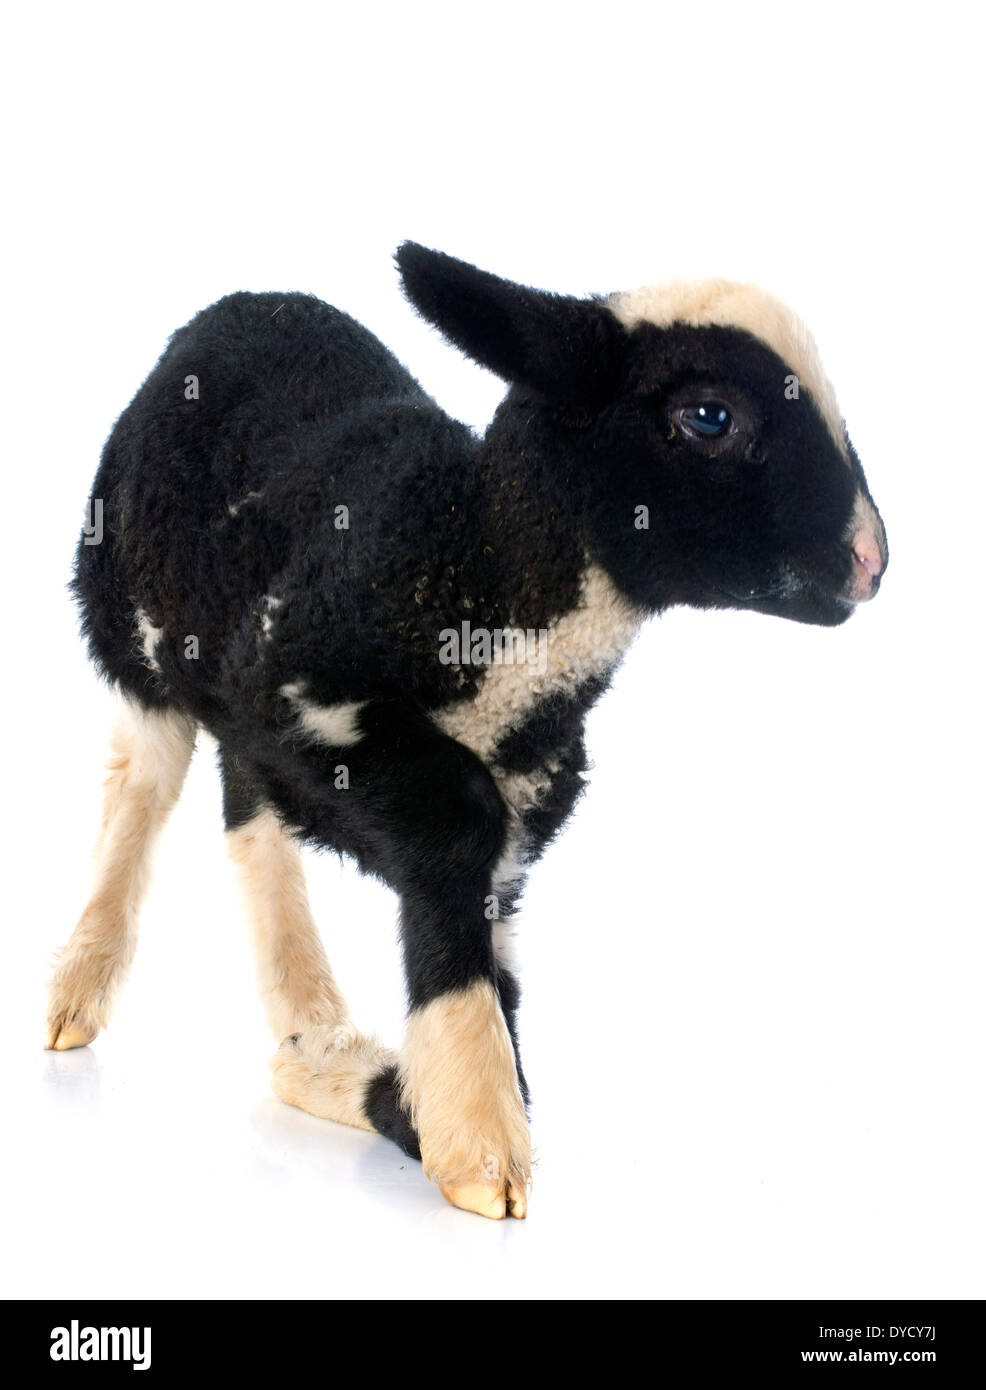 young lamb in front of white background Stock Photo